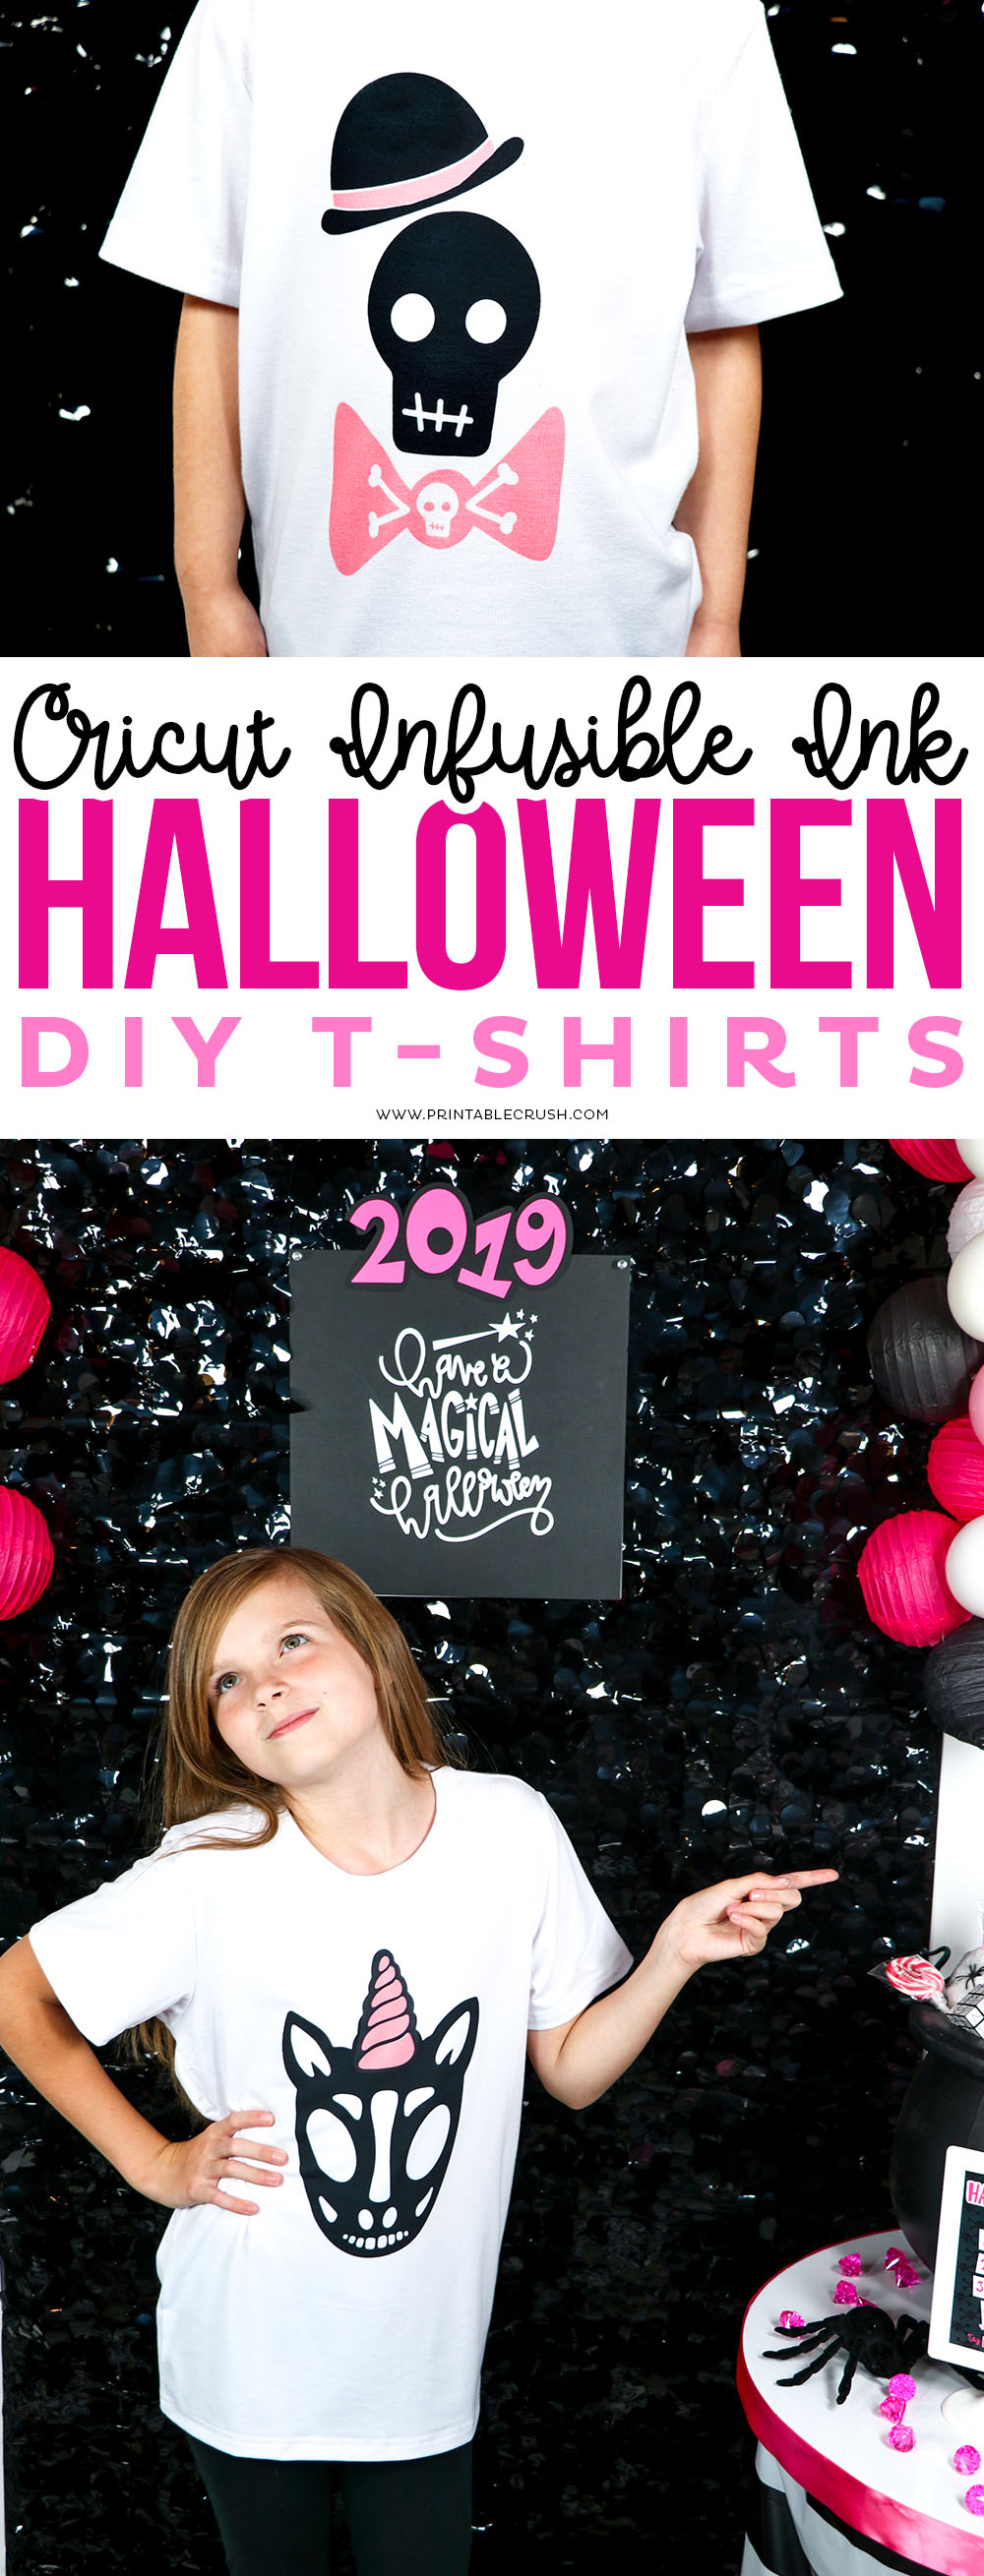 Cricut Infusible Ink Halloween T-shirt designs